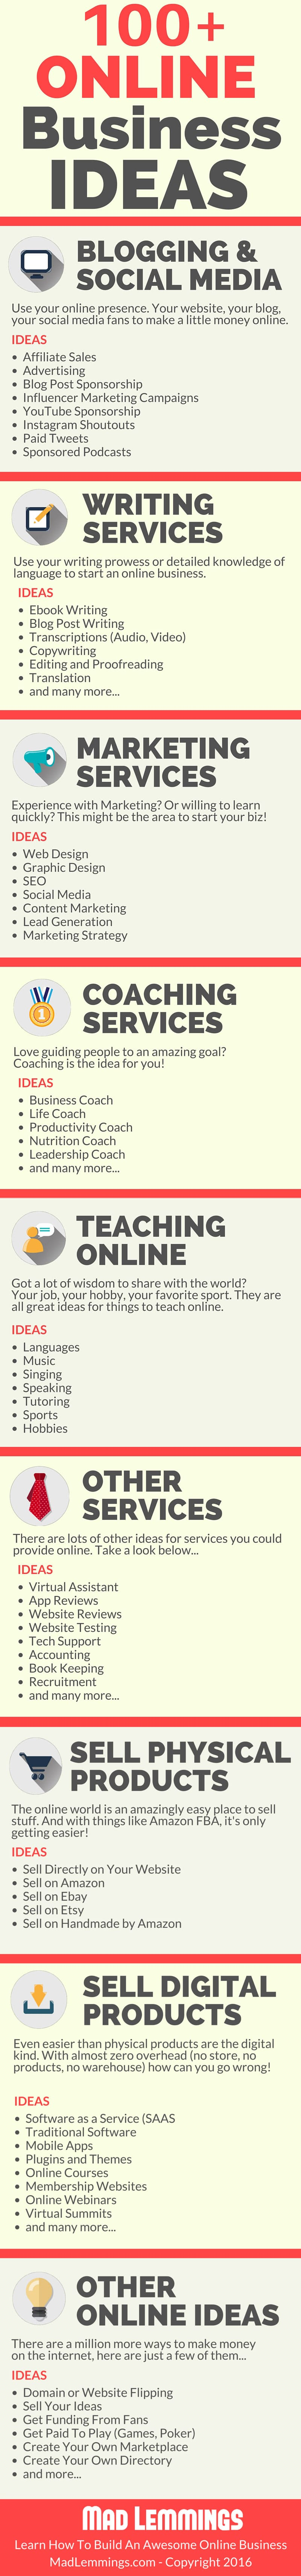 100 Online Business Ideas Infographic